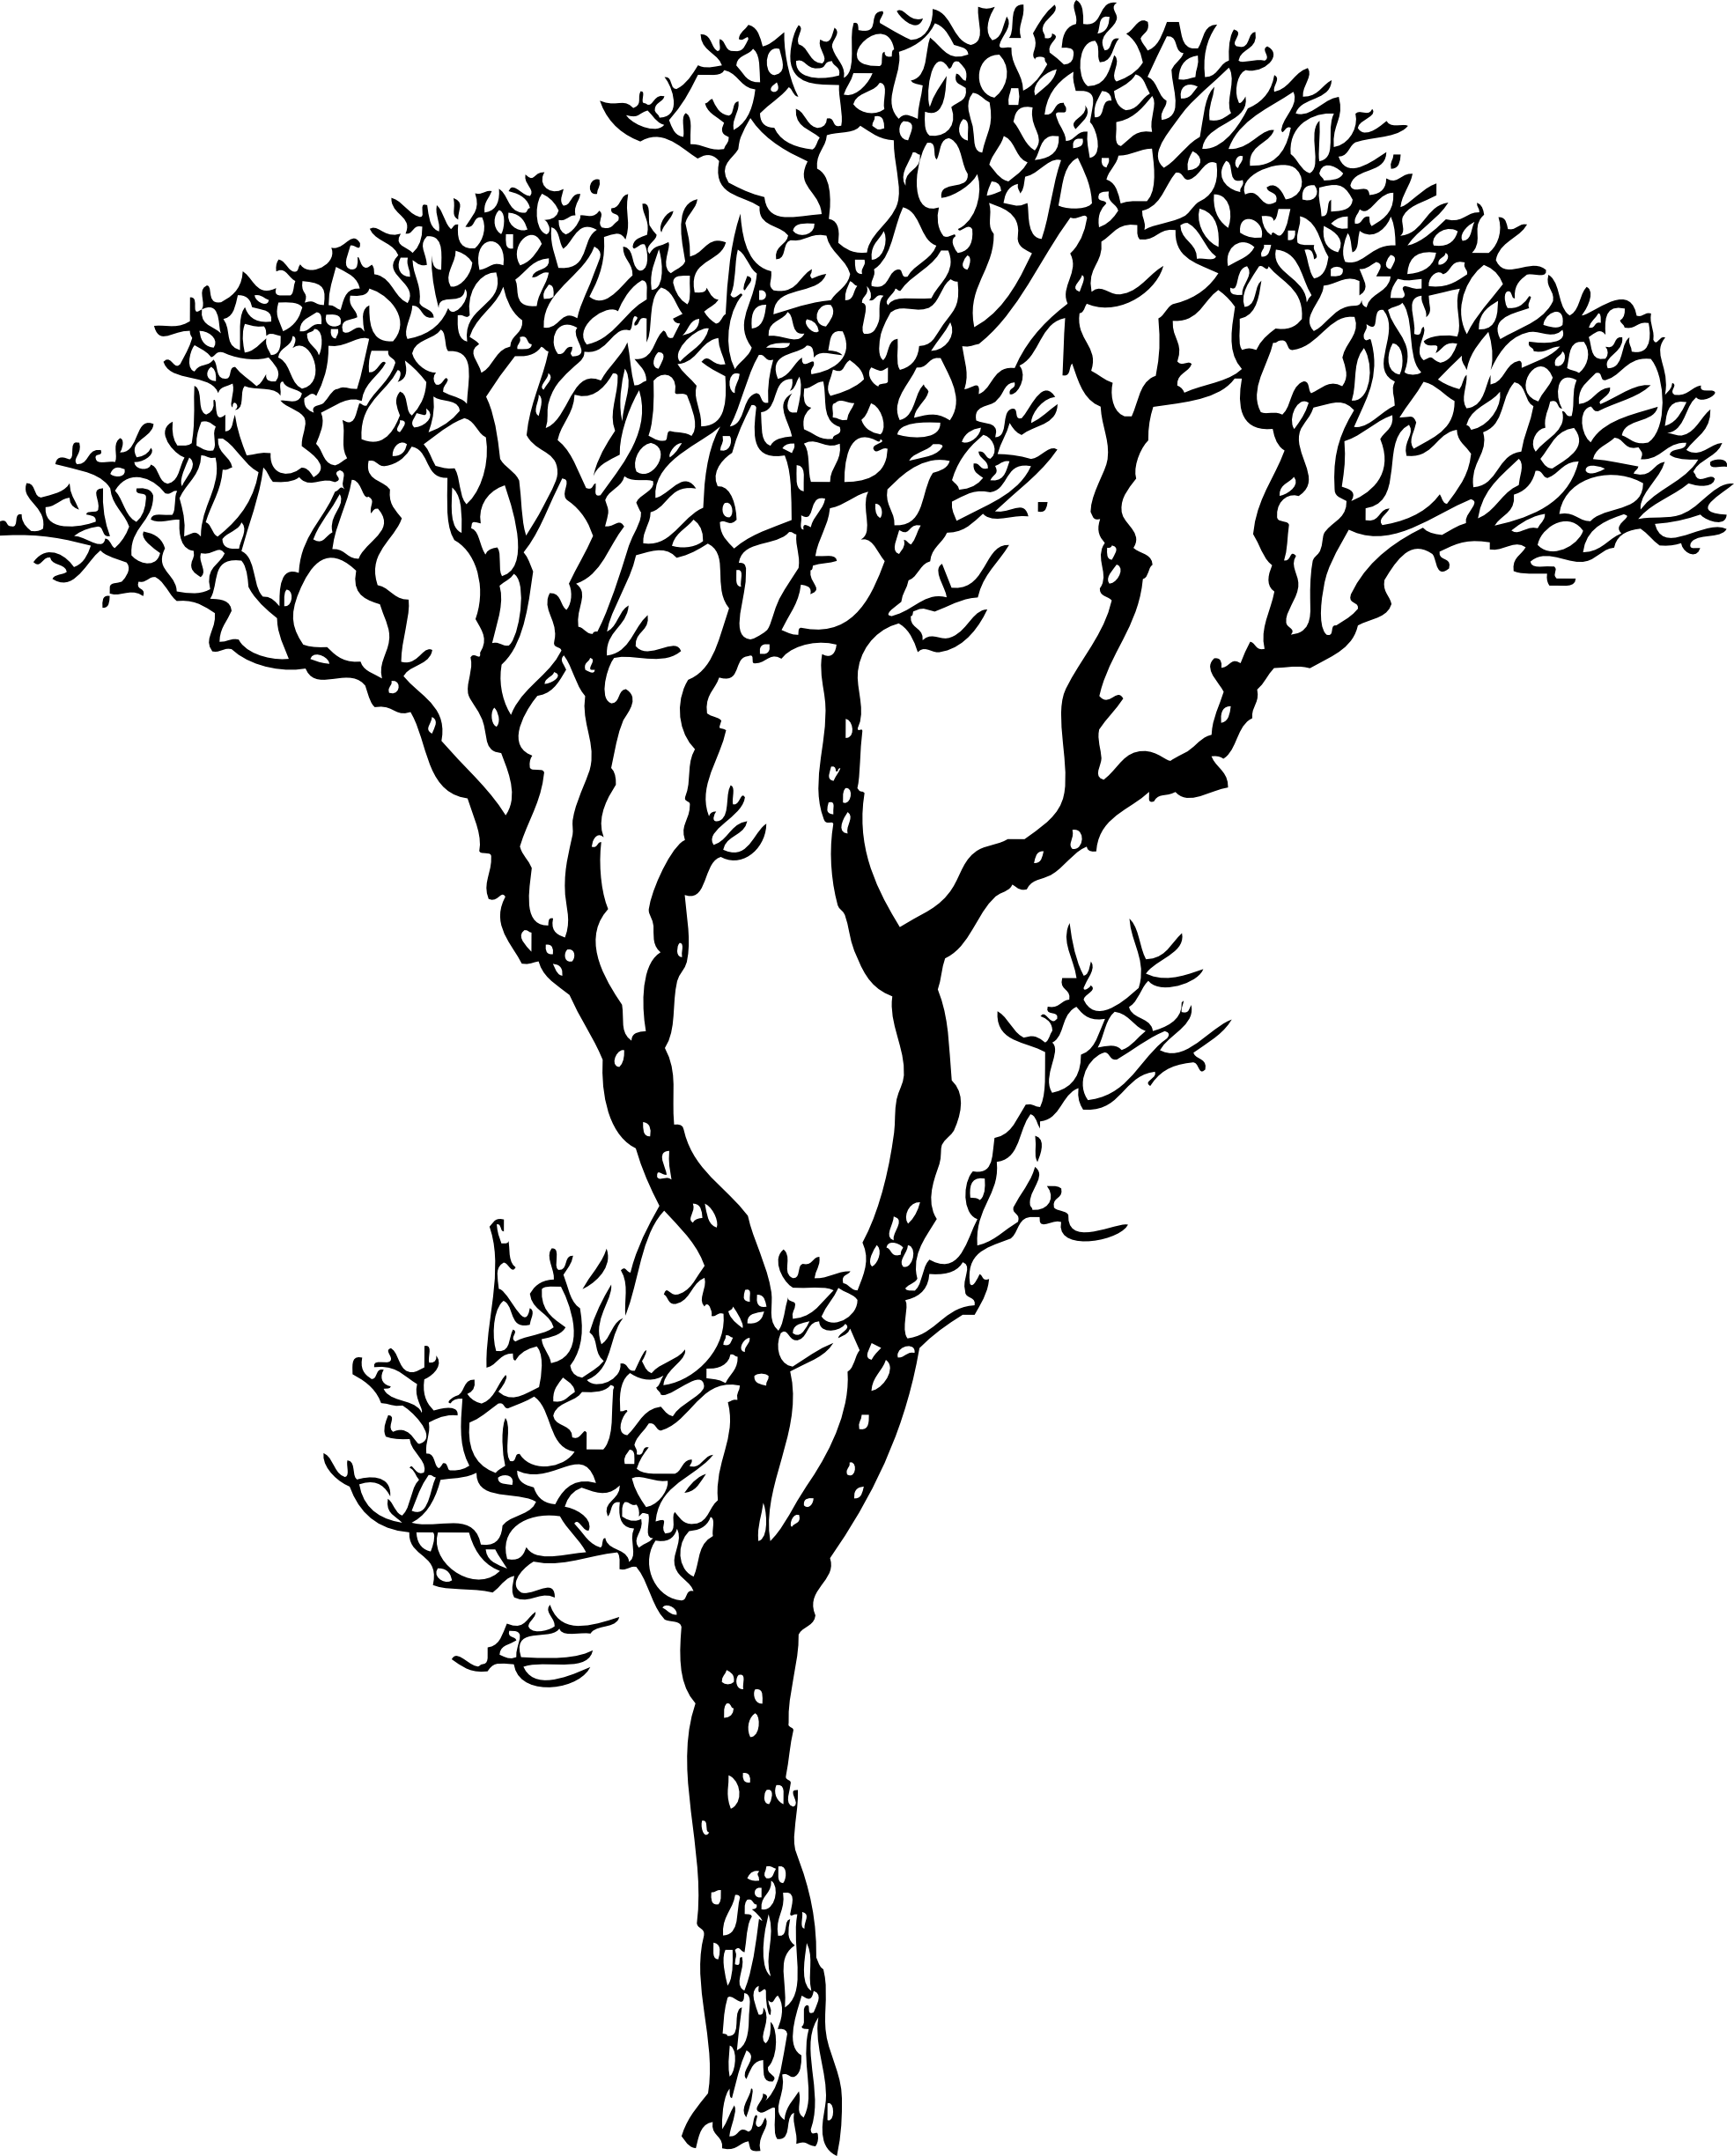 Skin clipart black and white. Bare tree line art